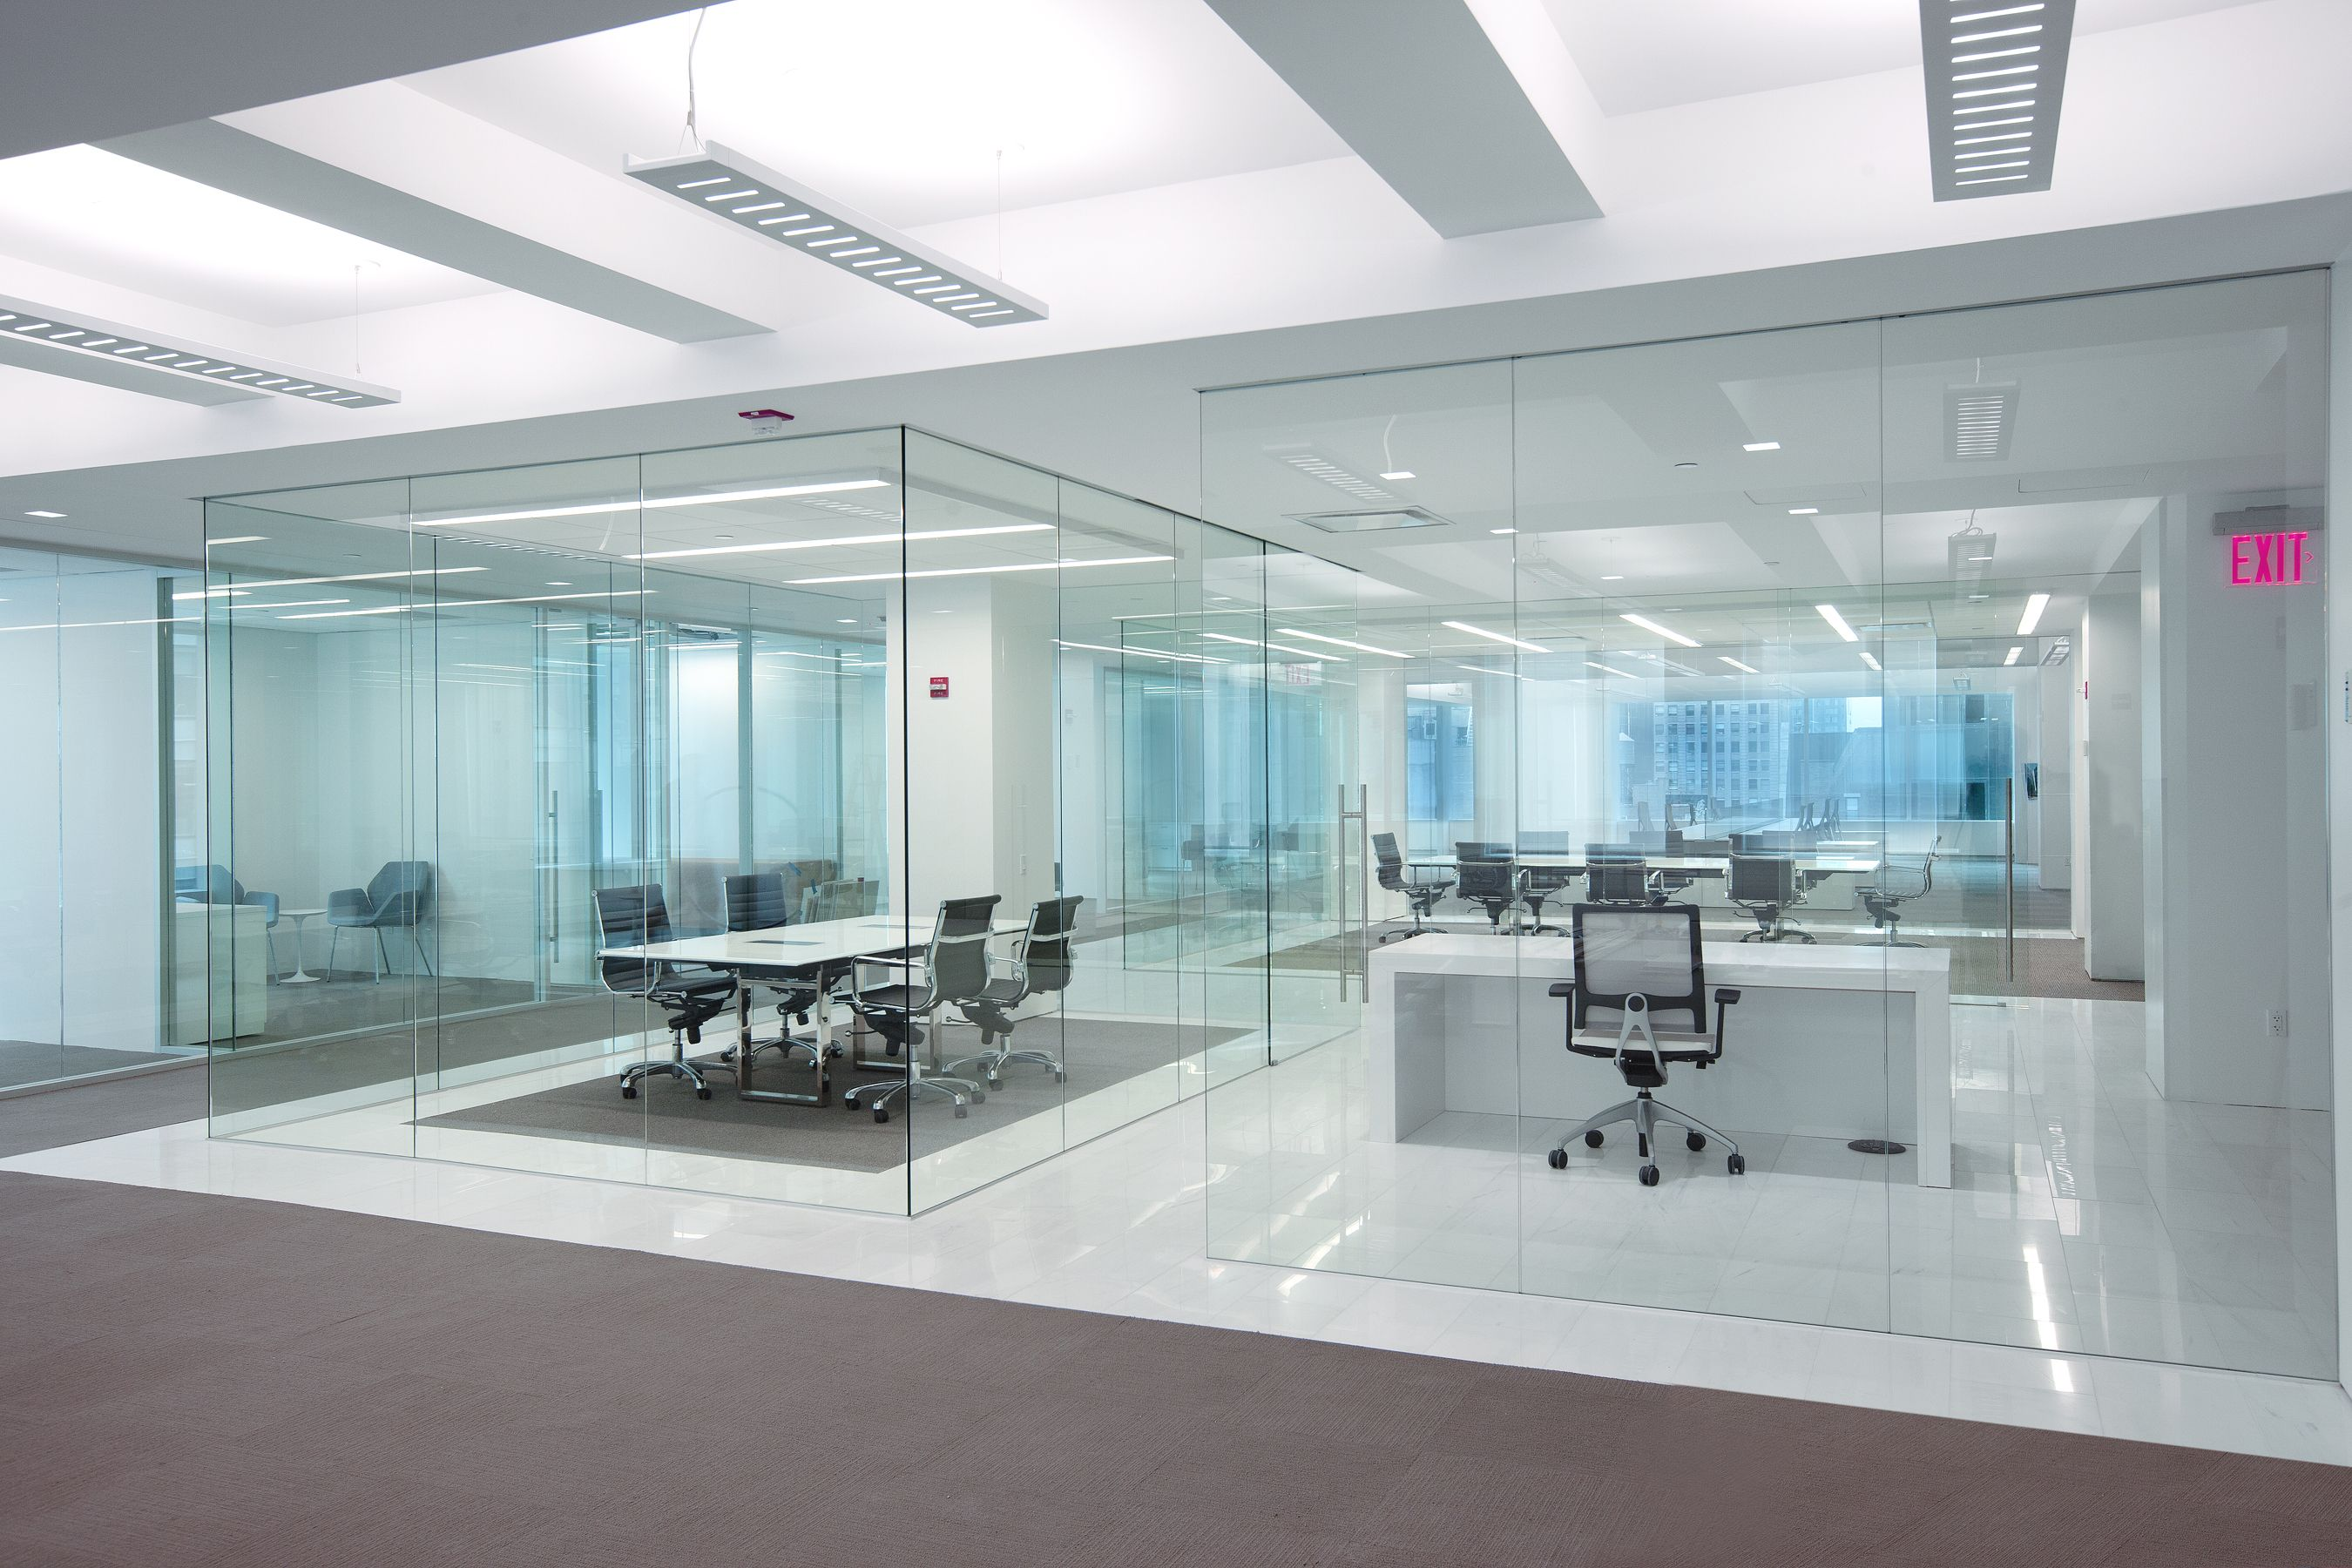 Commercial Areas To Be Renoved Or Contructed Toughenedglass Are Best Choice To Allow More Light To Ent Sliding Glass Door Glass Door Frameless Glass Doors